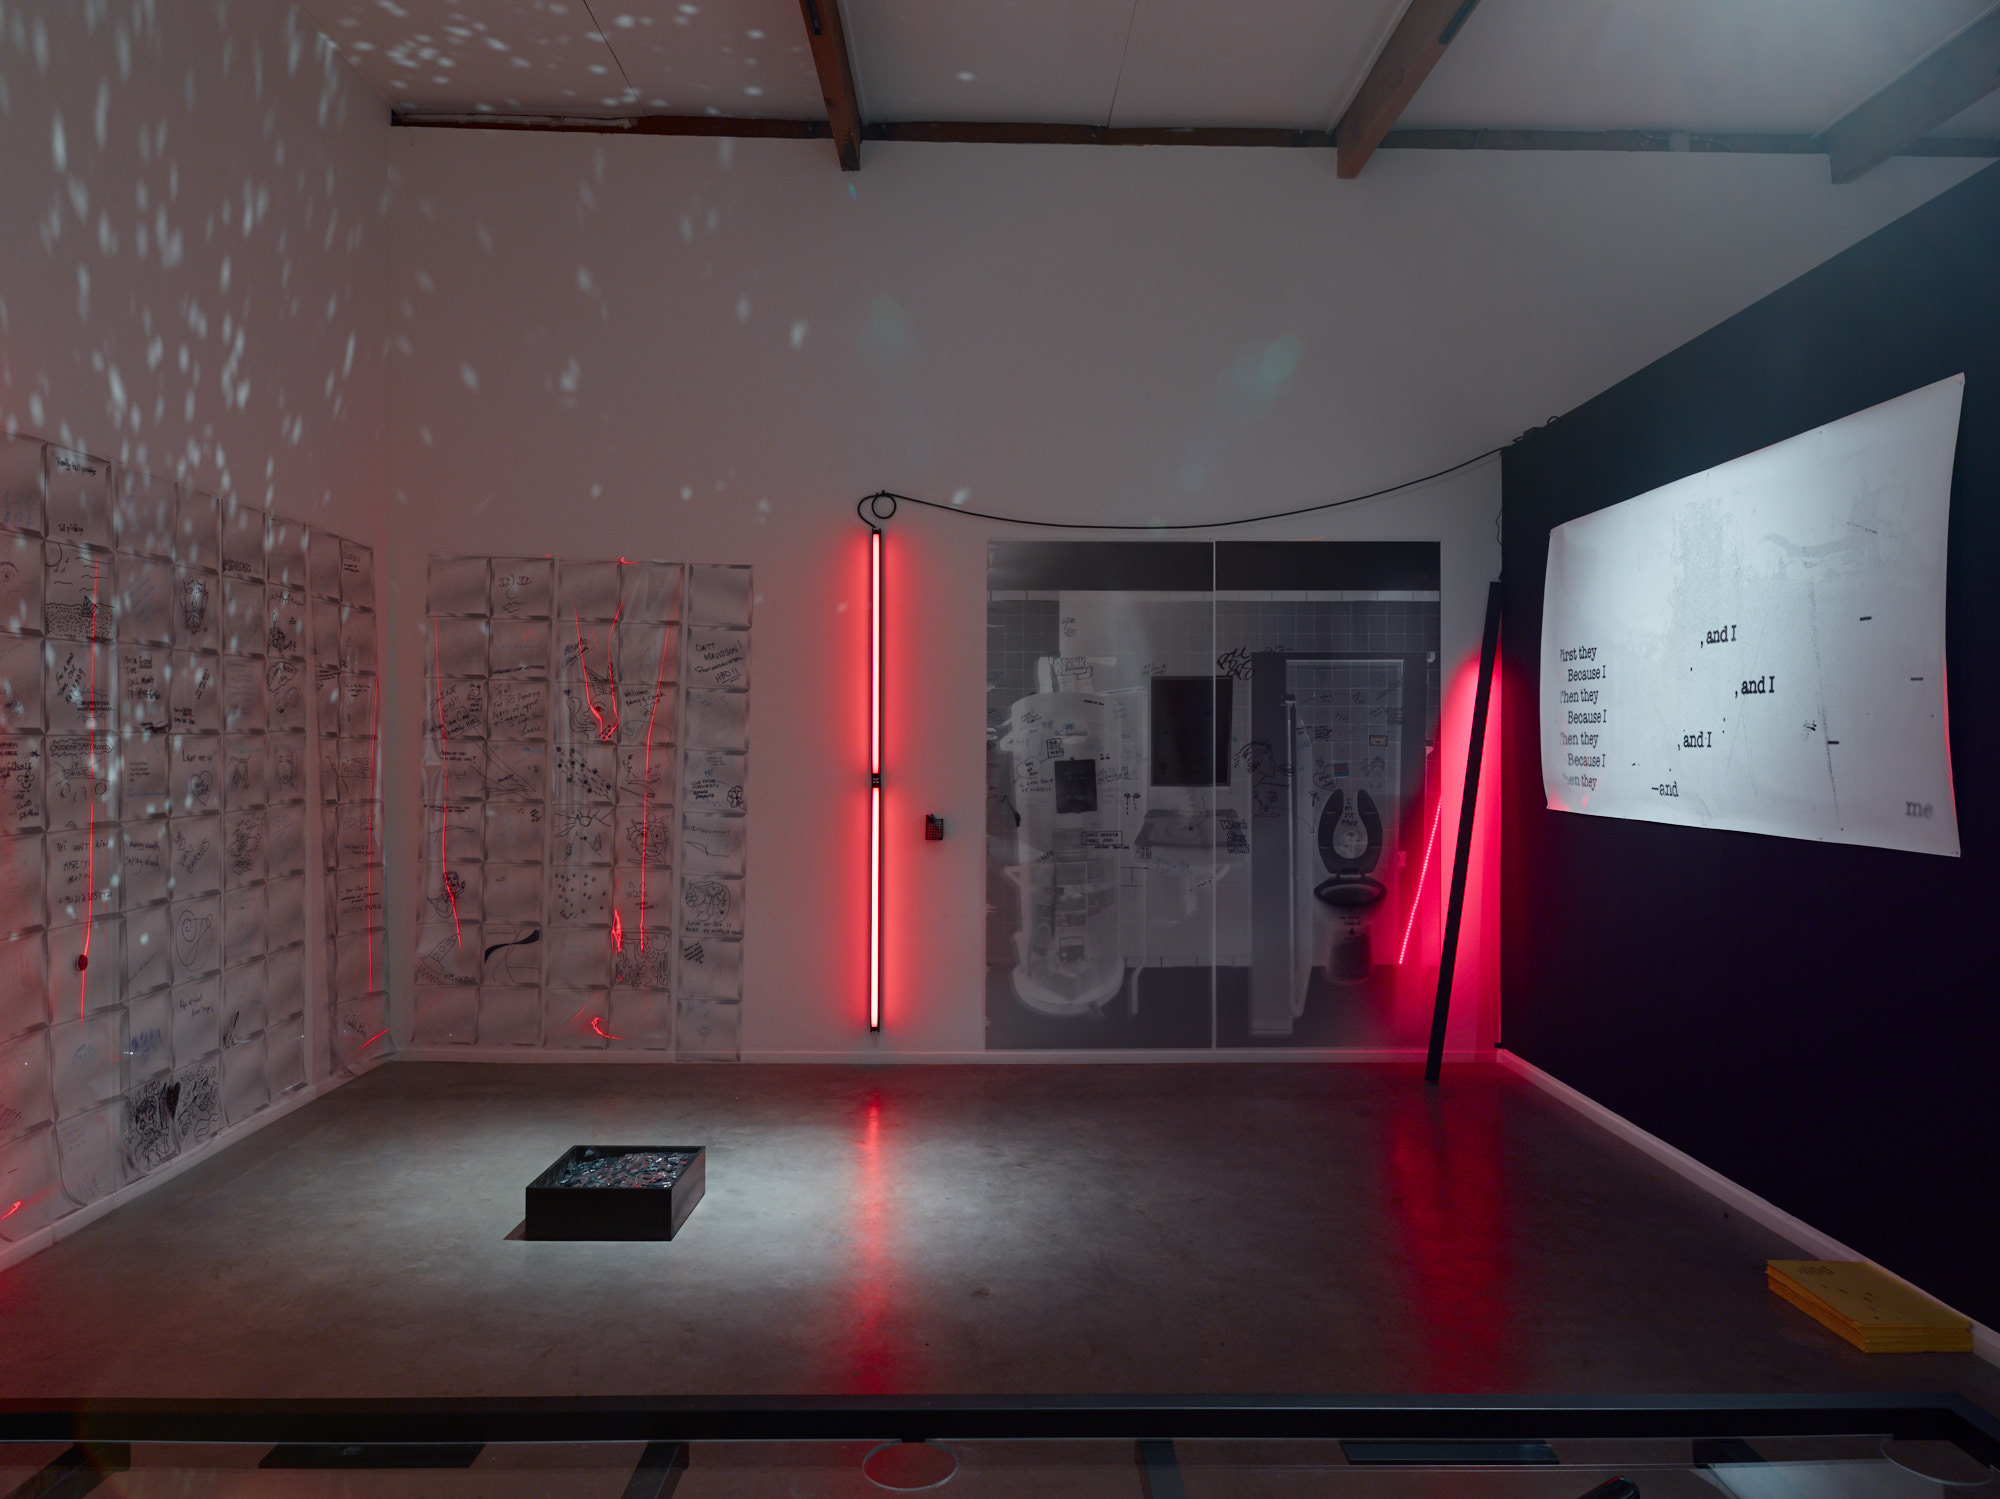 Collective Memory installation